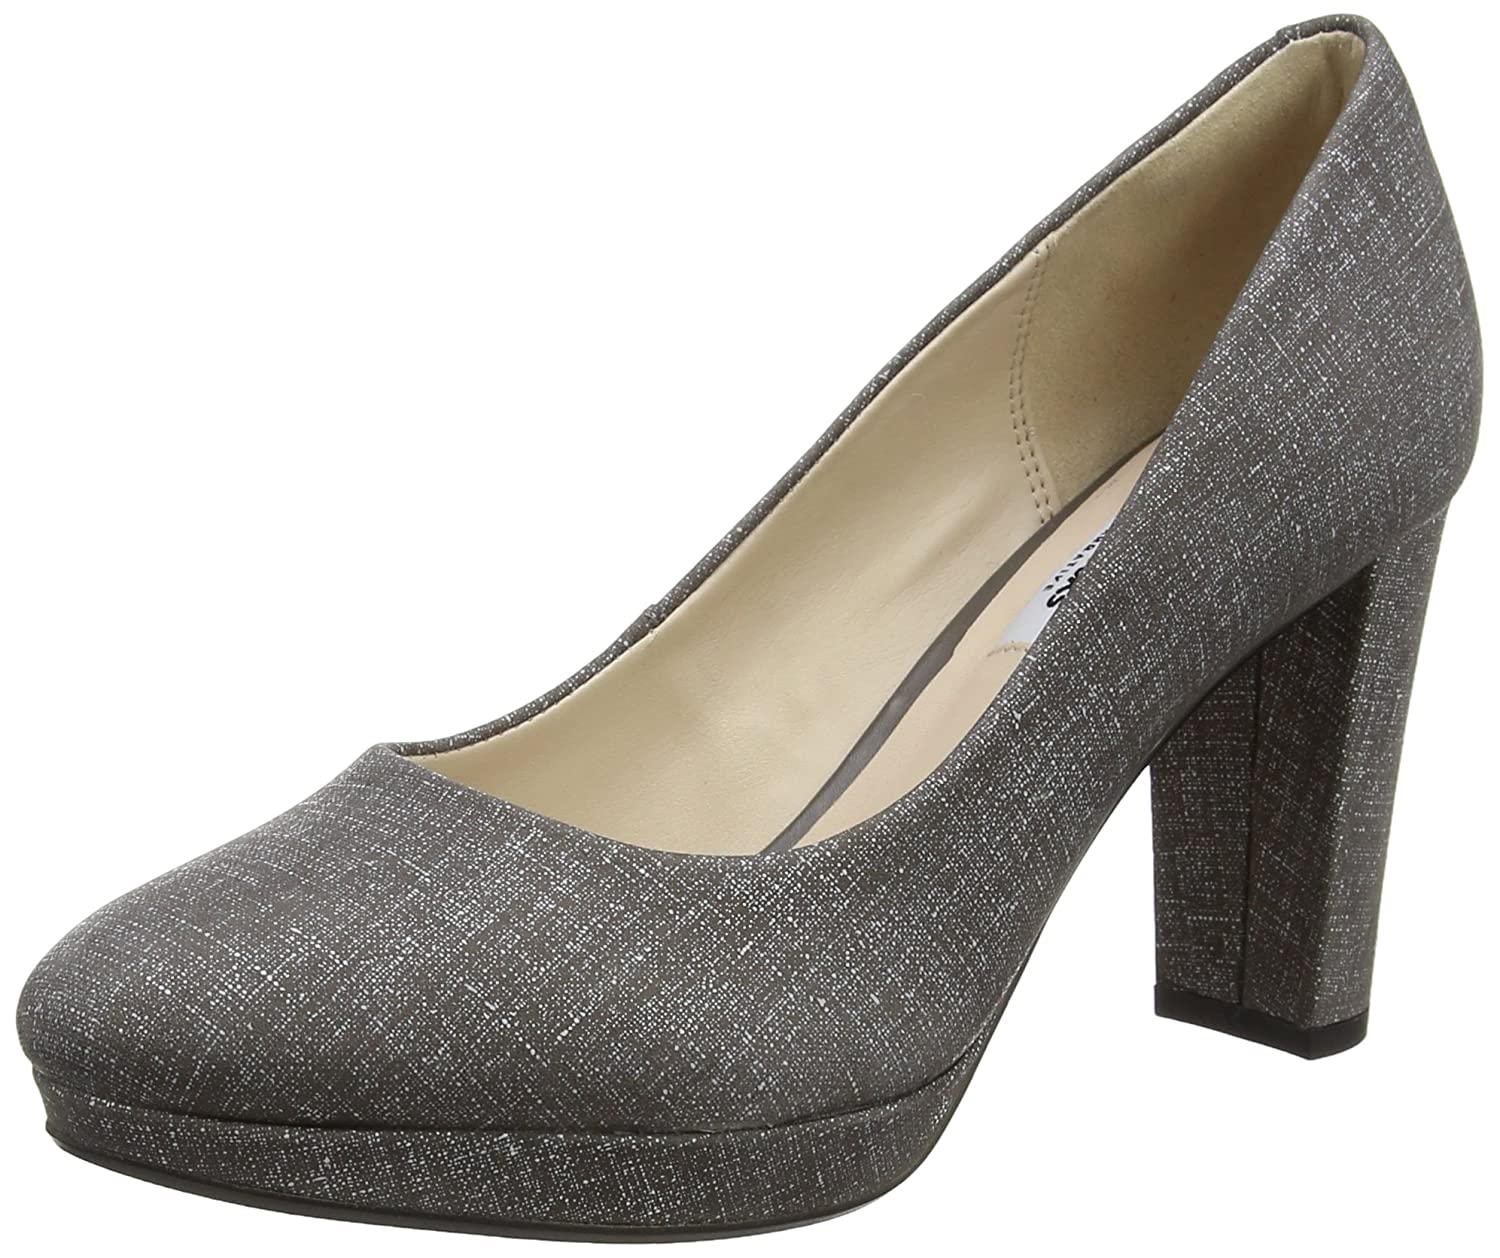 f937ae827be Clarks Women s s Kendra Sienna Closed-Toe Pumps